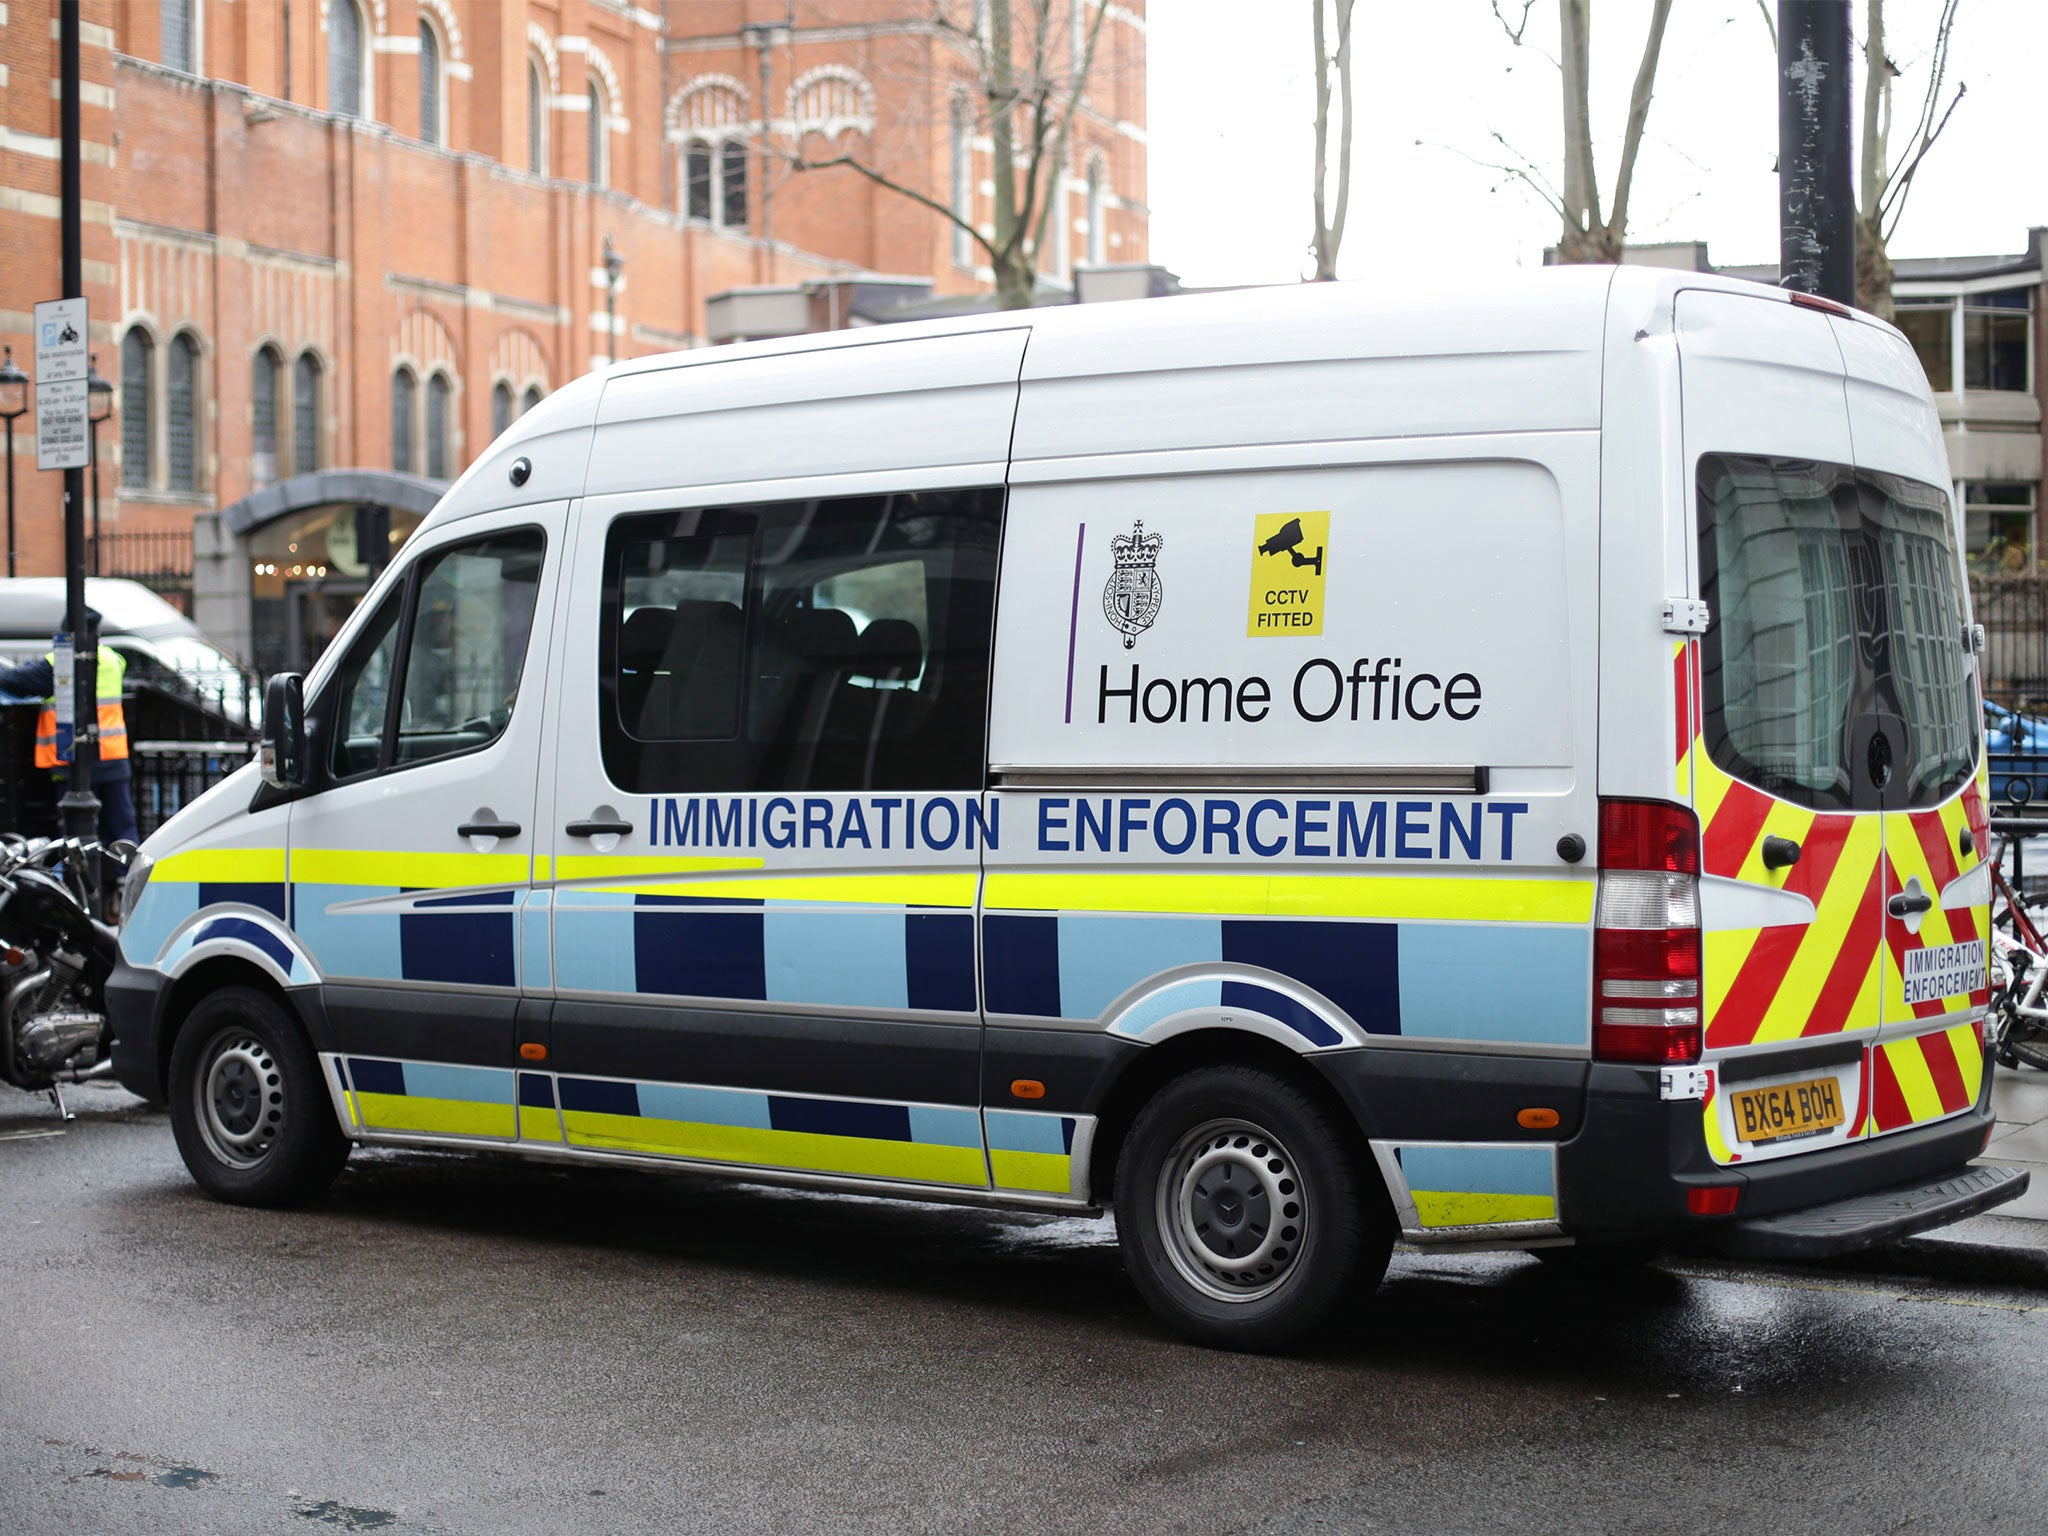 immigration-van-home-office.jpg